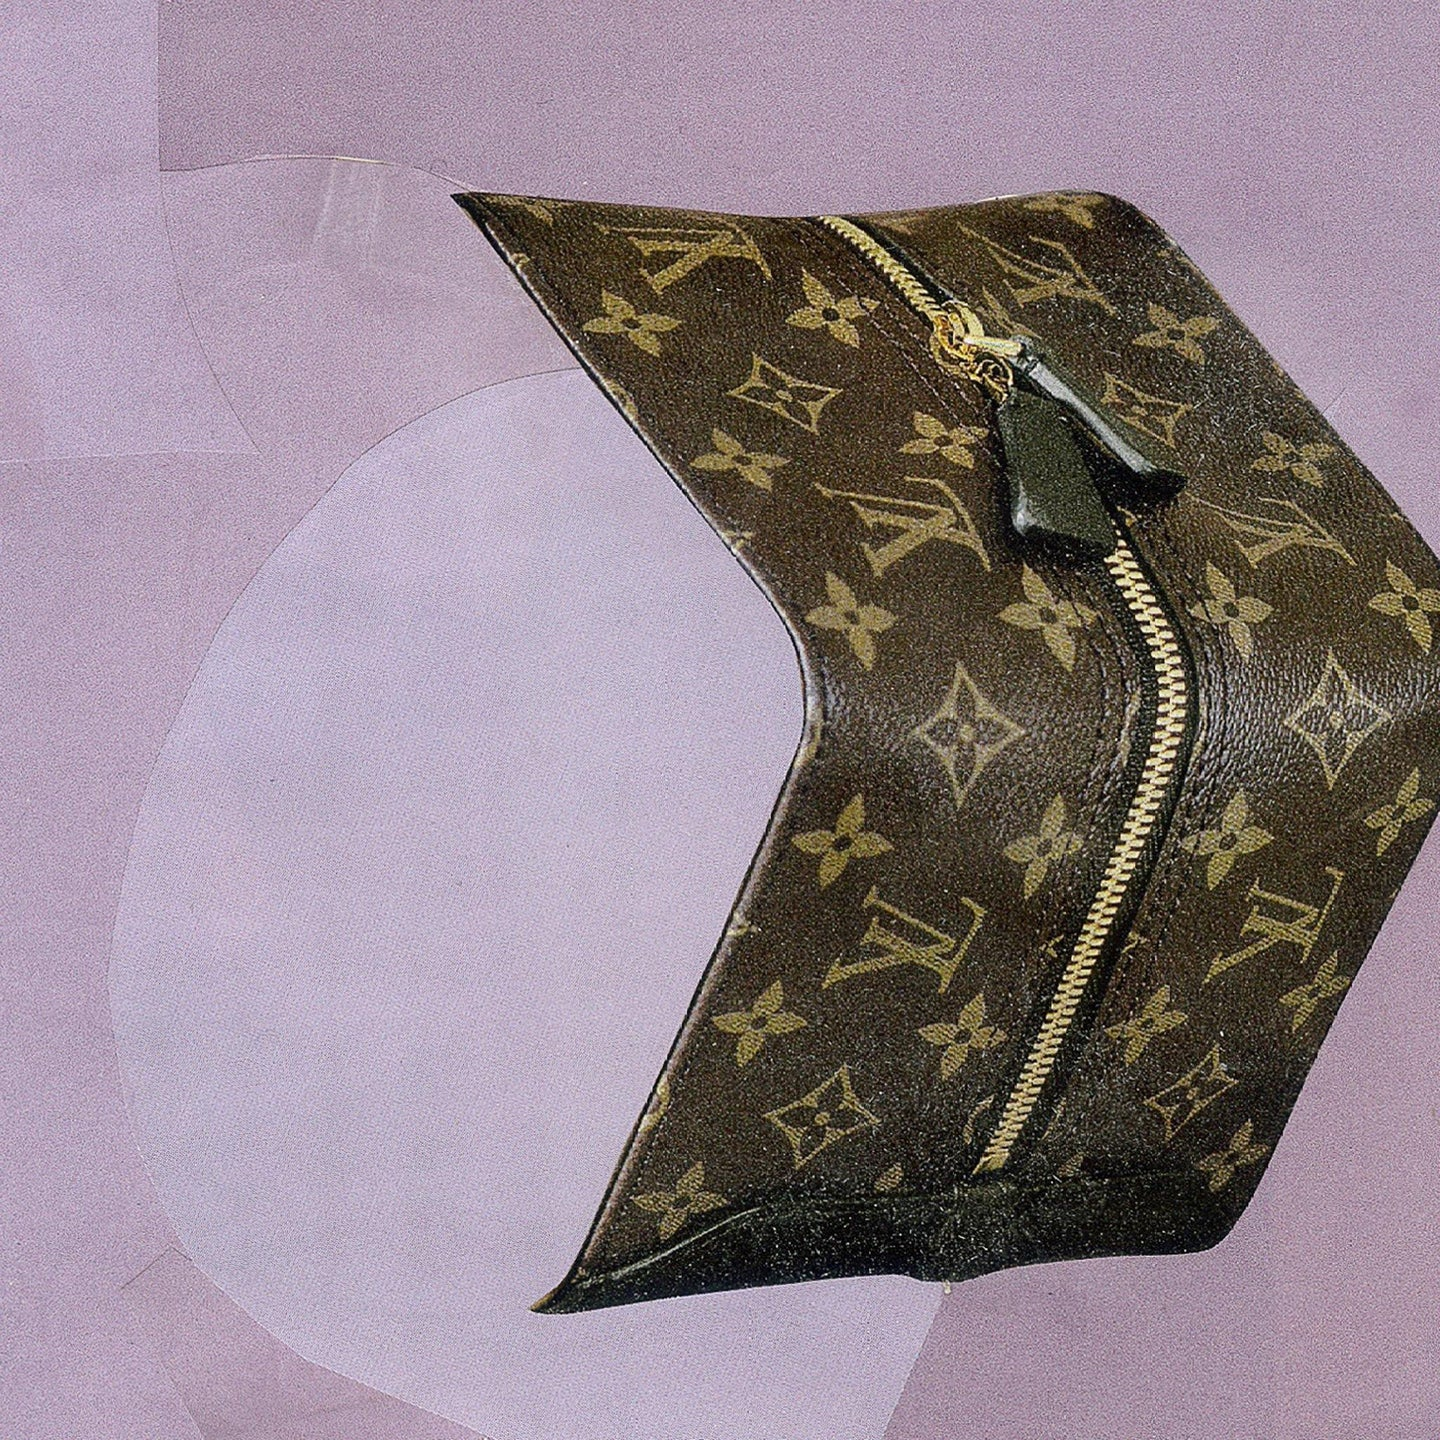 Louis Vuitton 2018 II